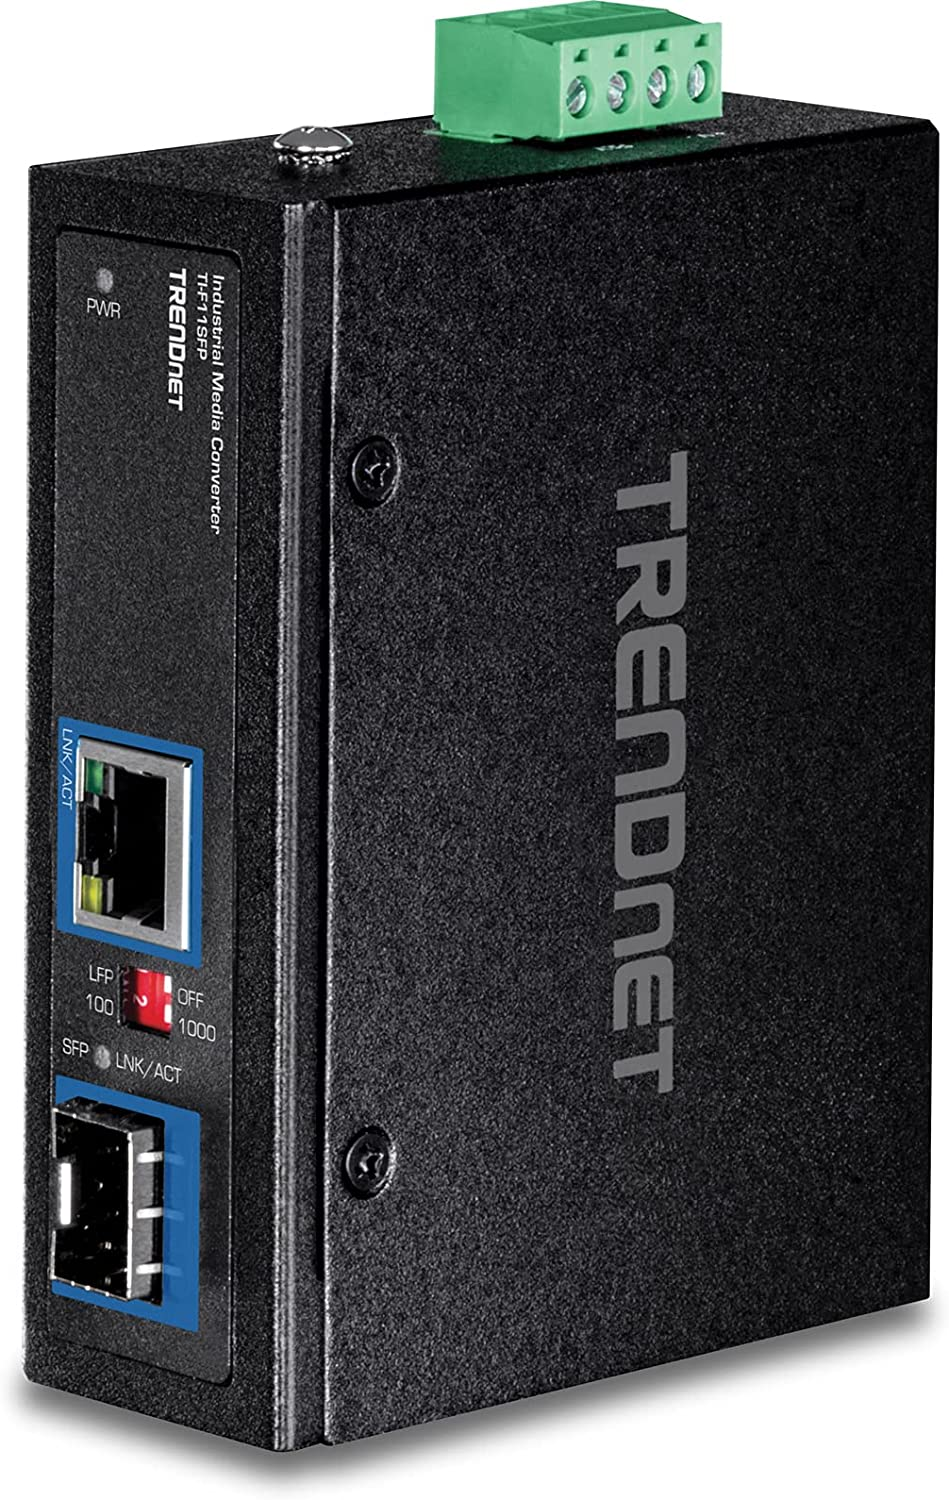 TRENDnet Hardened Industrial wholesale 100 1000 Conver sold out Media Base-T SFP to